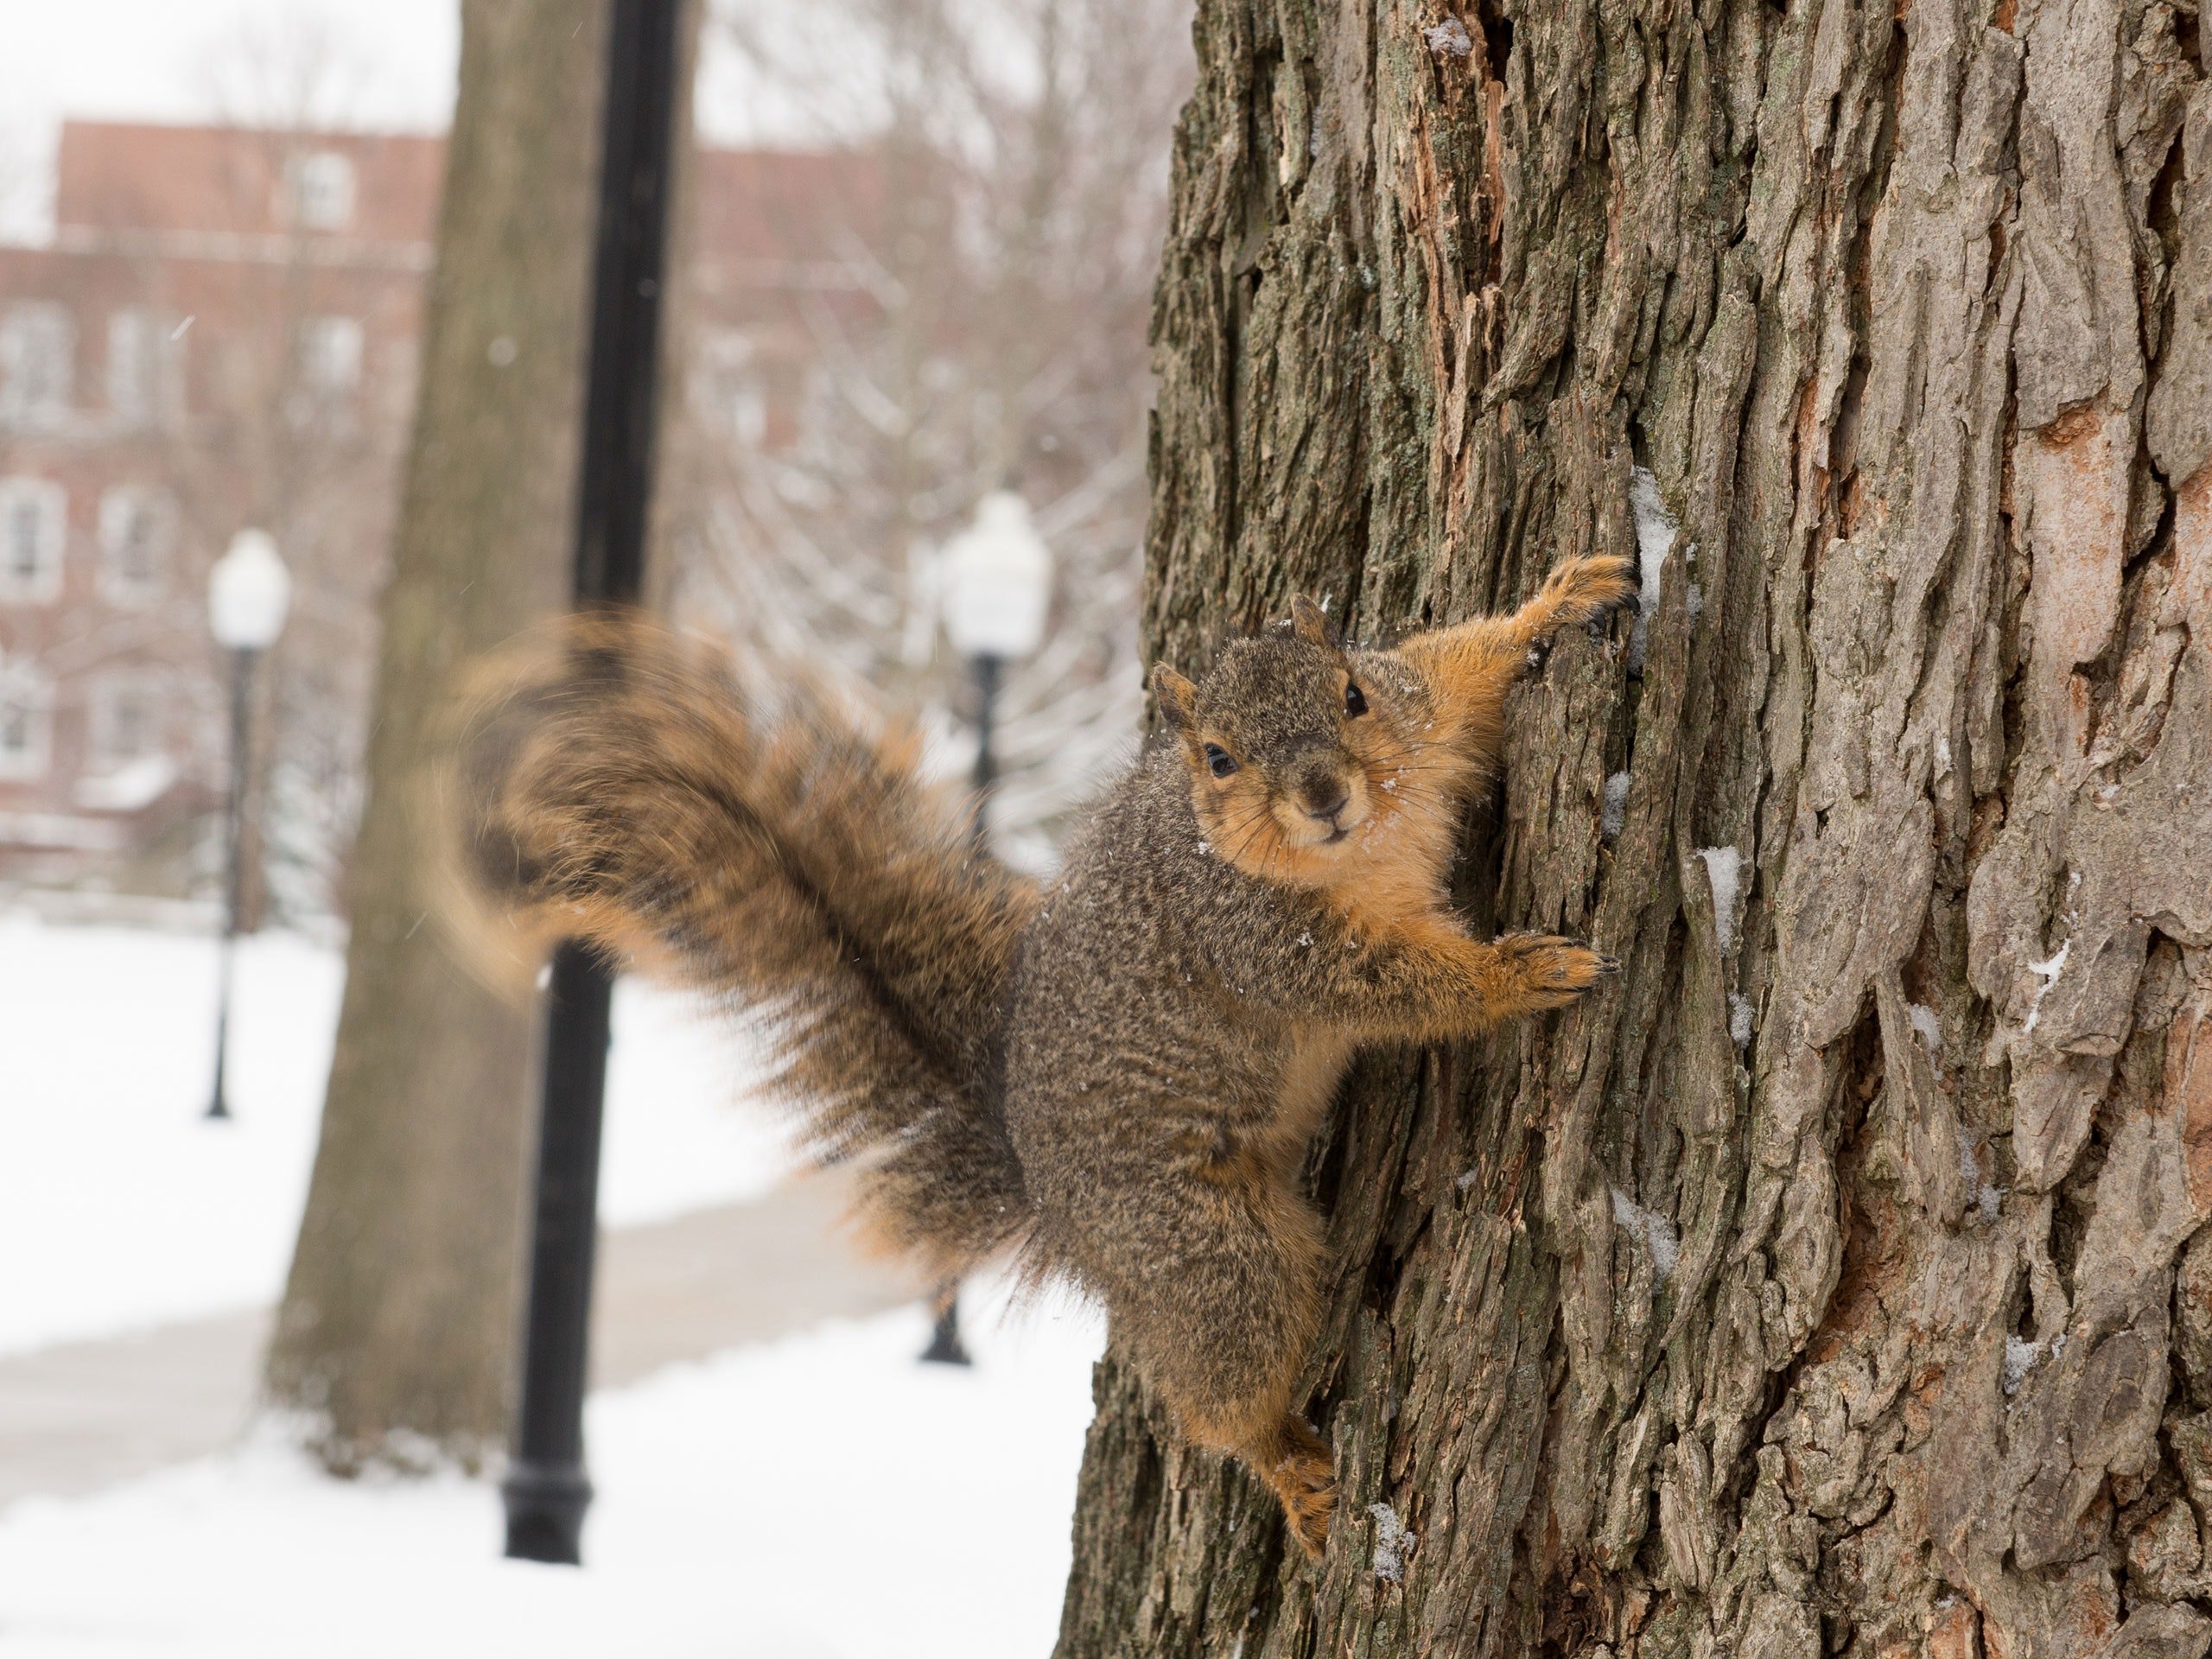 Squirrel hanging on the side of a tree in winter, engaging the viewer.